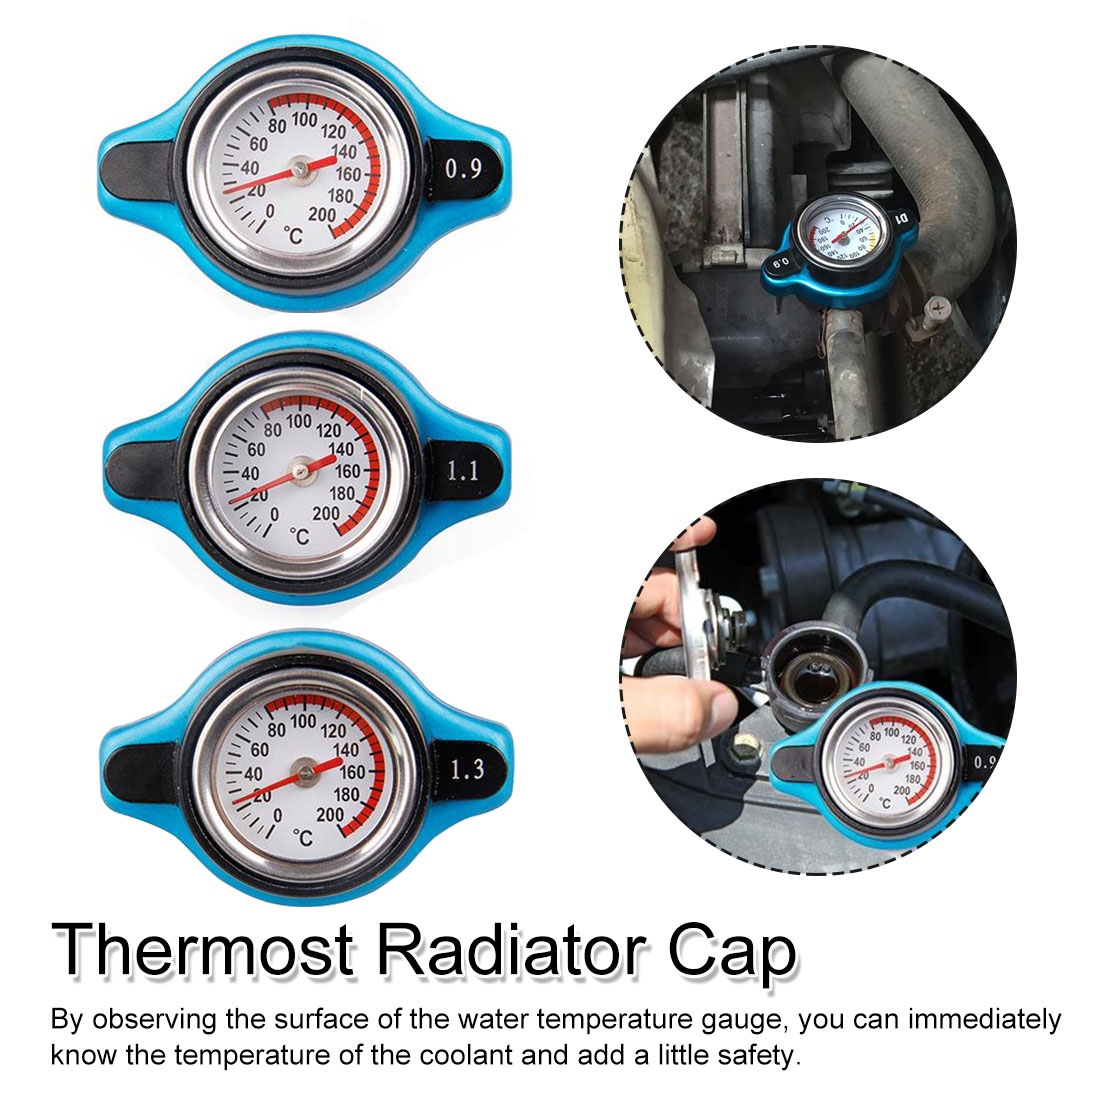 Automotive high pressure water tank cover Special water tank Resistant to 0.9/1.1/1.3bar radiator cover car radiator cap|Water Temp Gauges| |  - title=